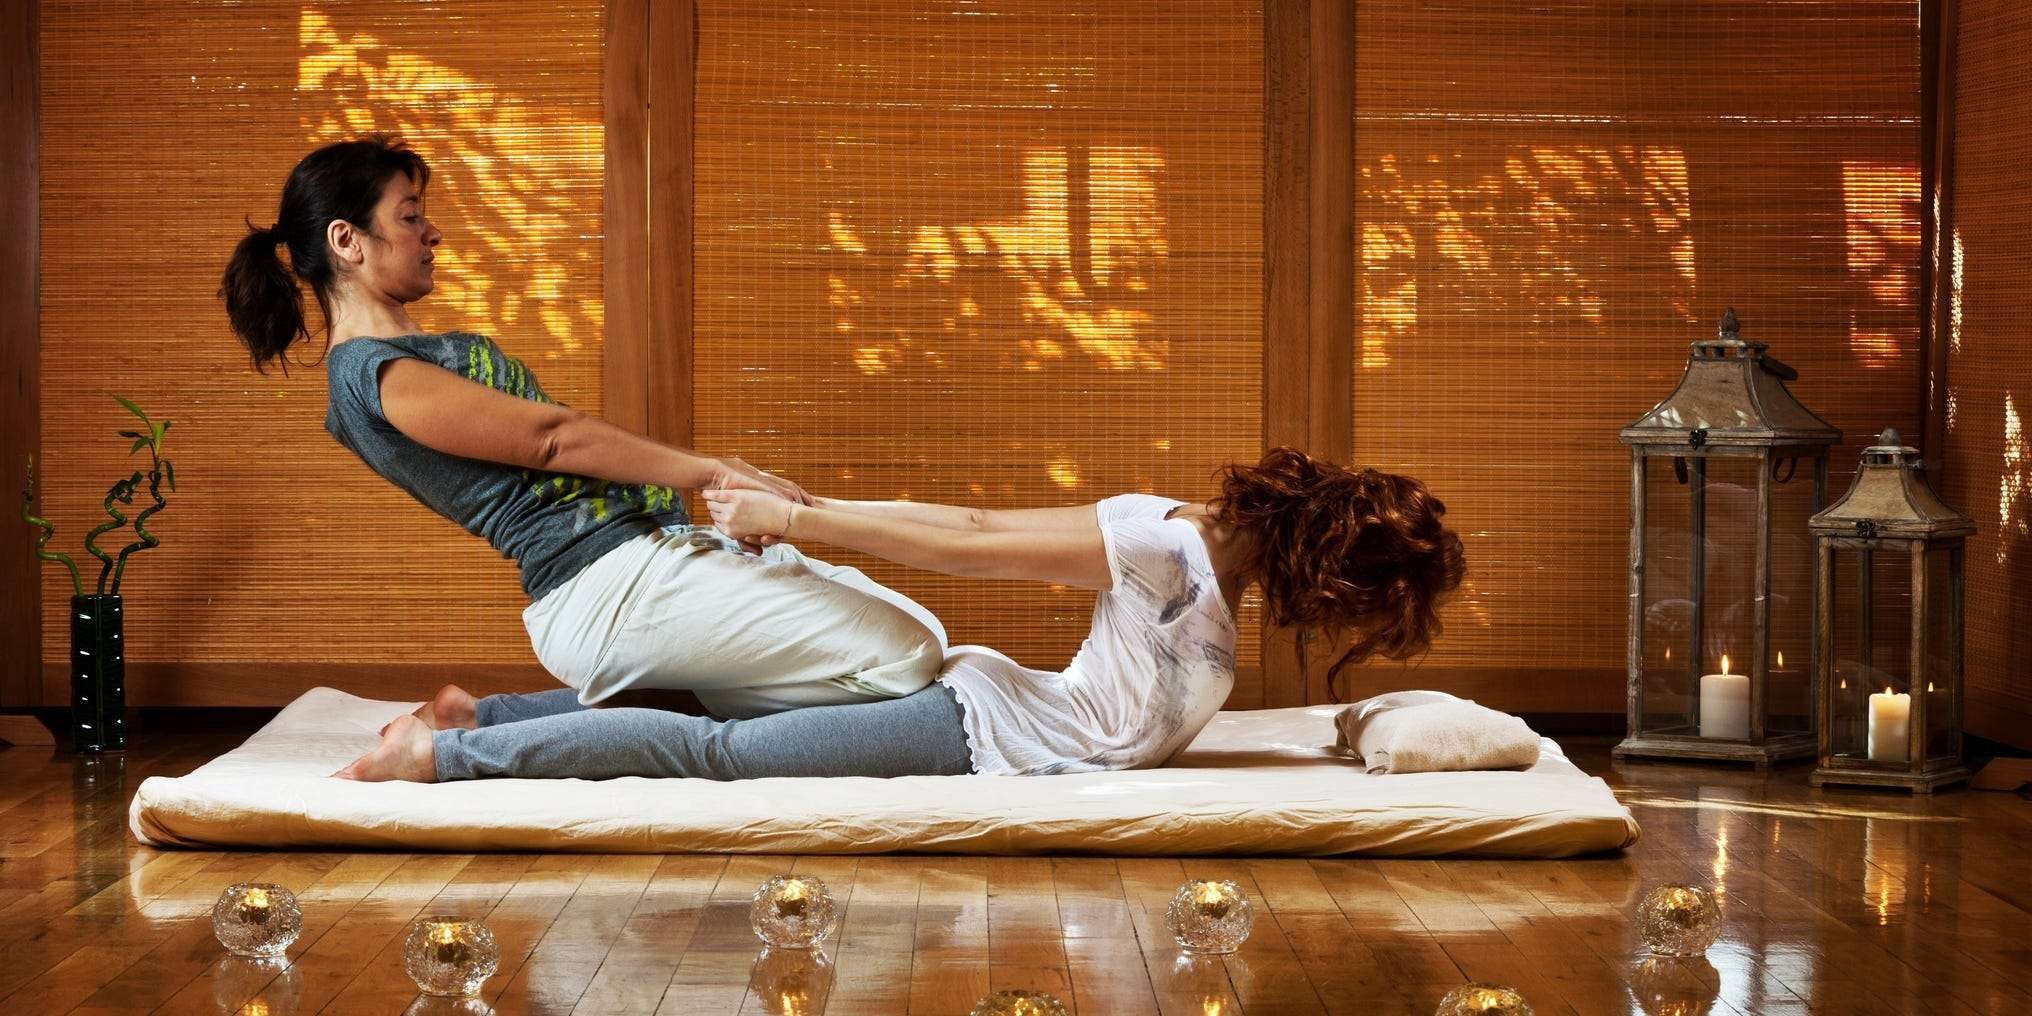 Thai massage is not your typical massage - heres what to